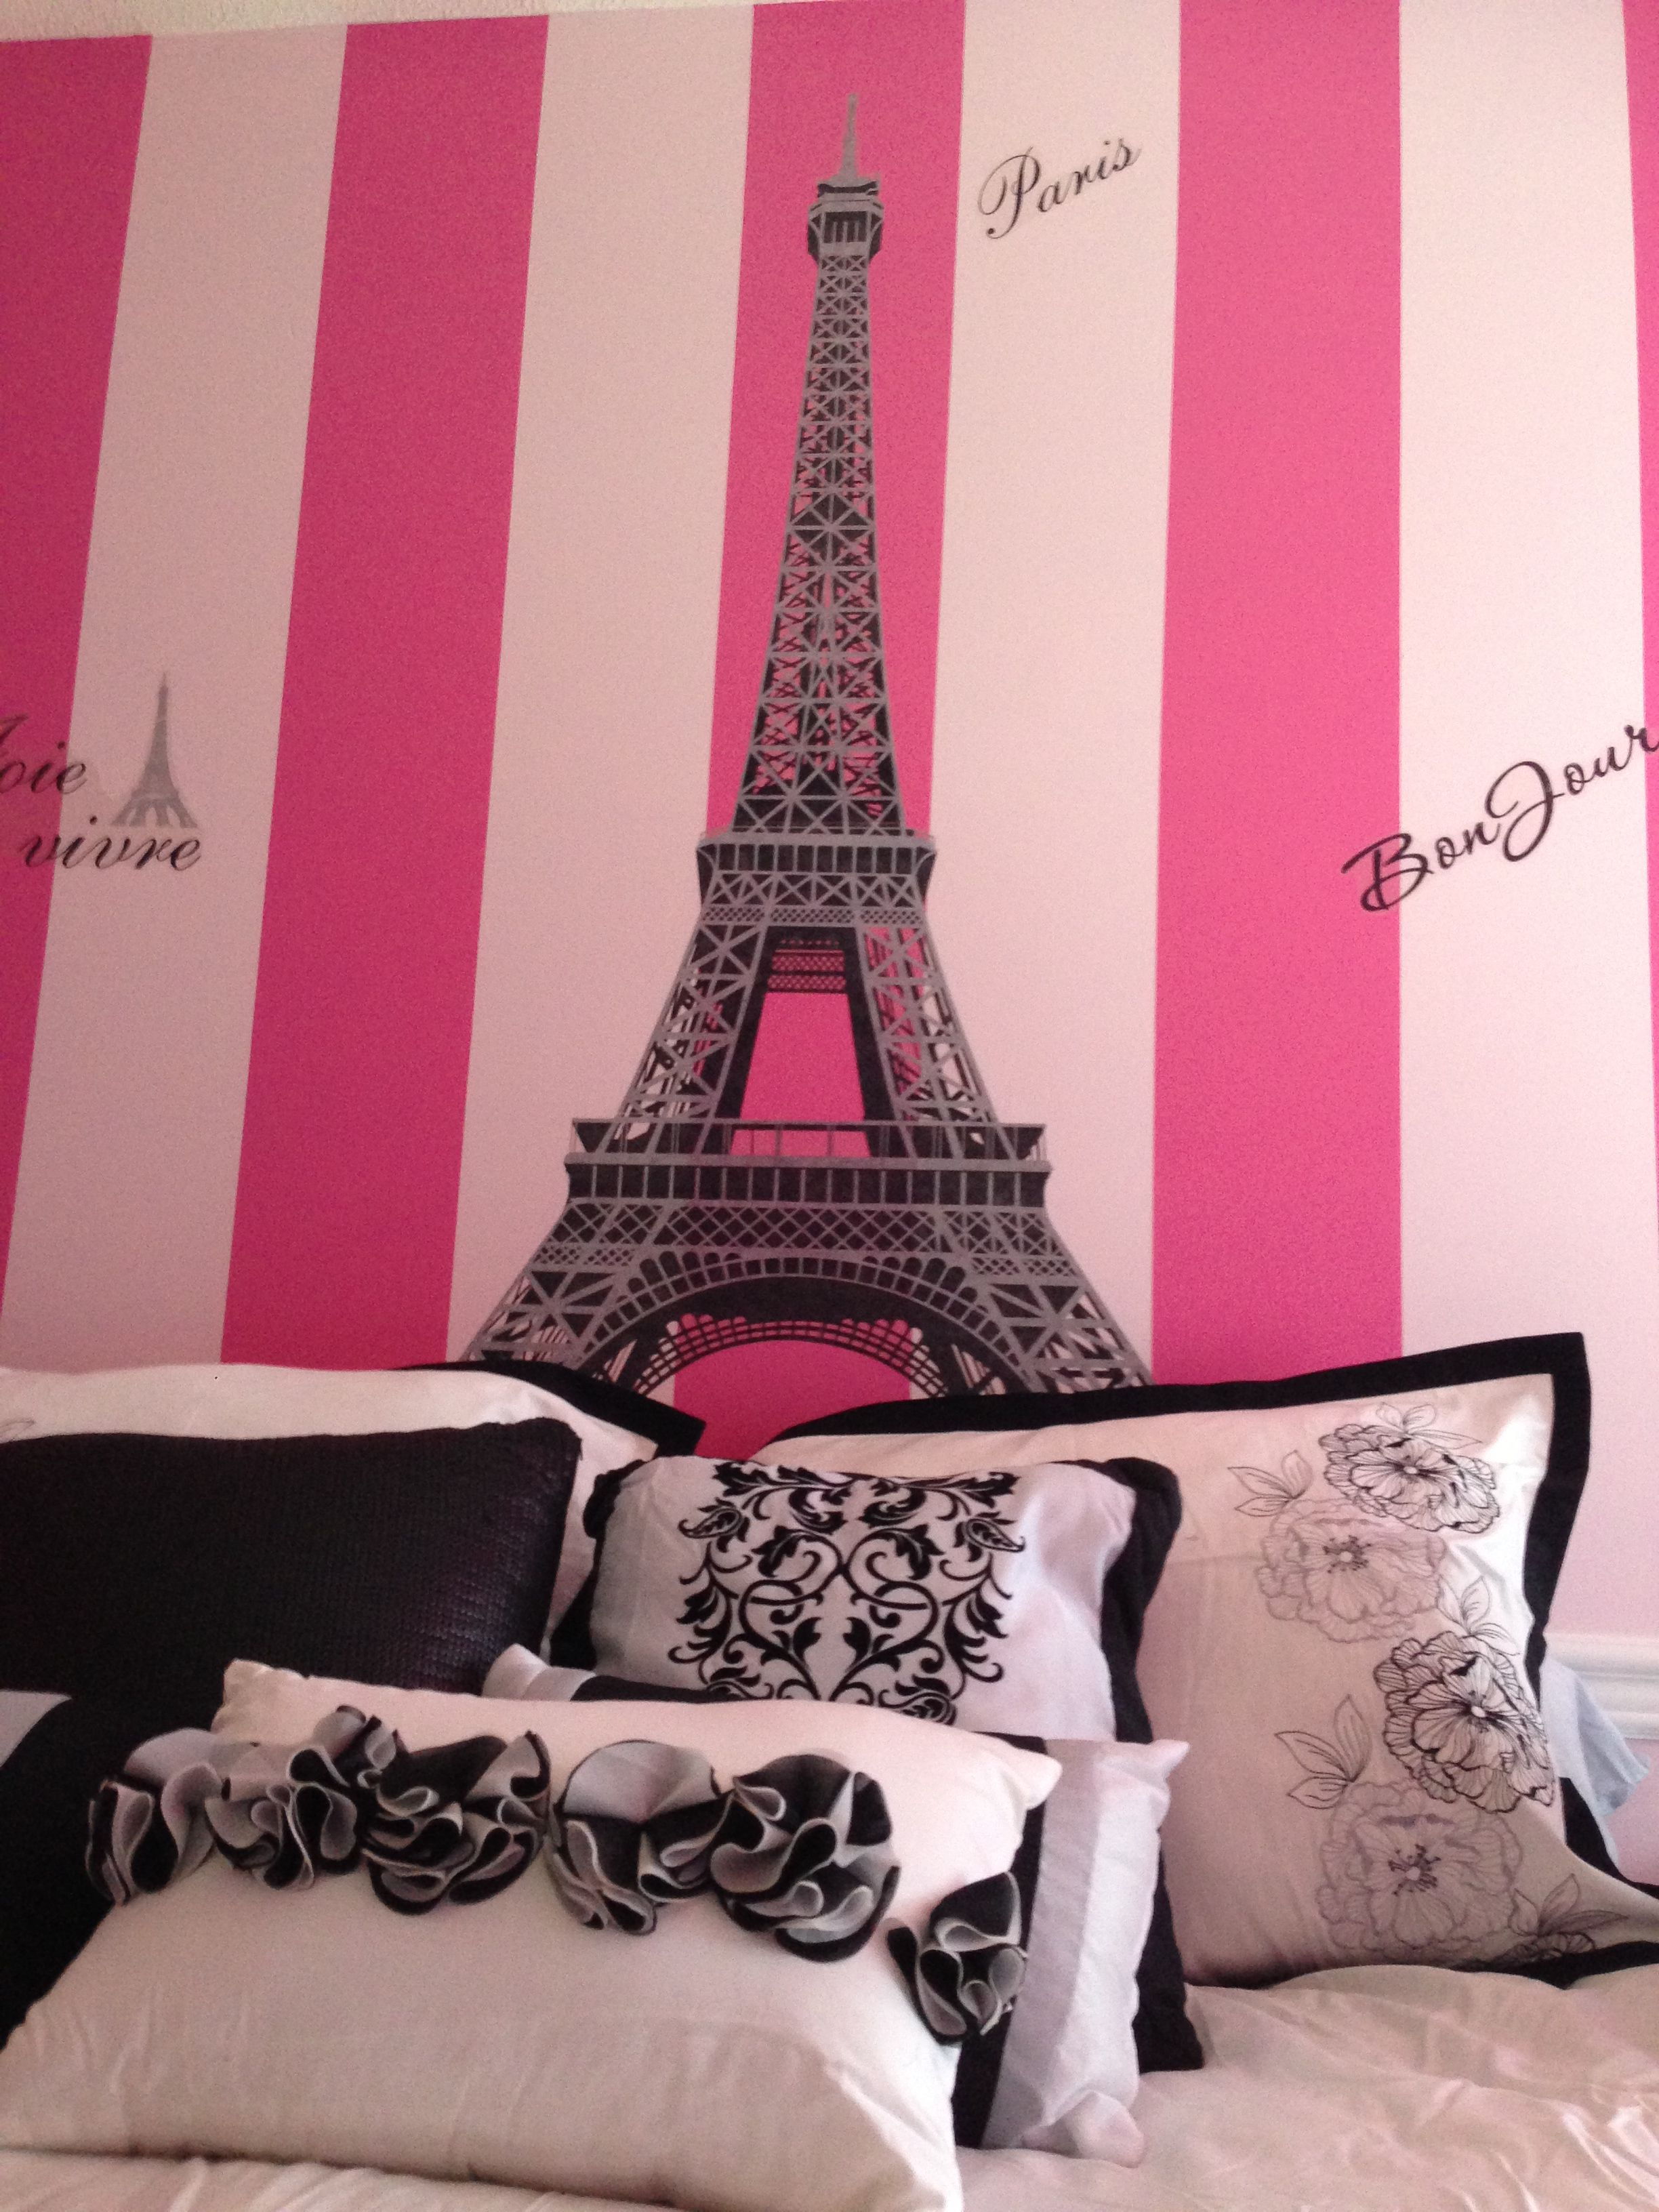 Paris Pretty Soft Pink Ruffles Eiffel Tower Fleur De Lis Feminine Inspiration Paris Chanel Dior Room Paris Bedroom Bedroom Decor